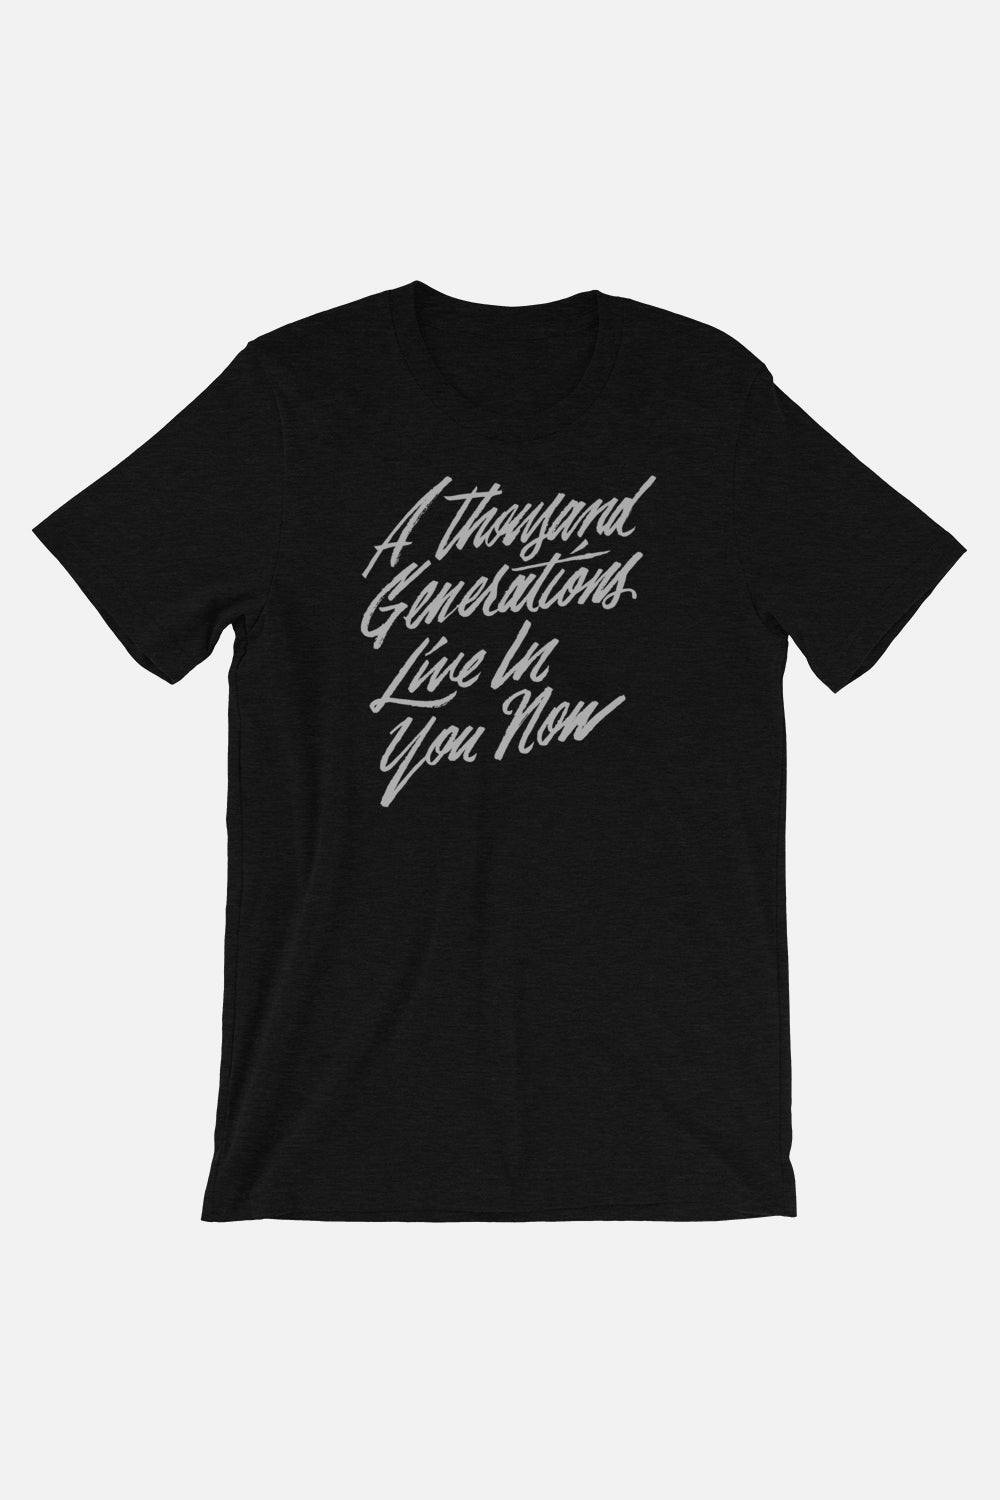 A Thousand Generations Unisex T-Shirt